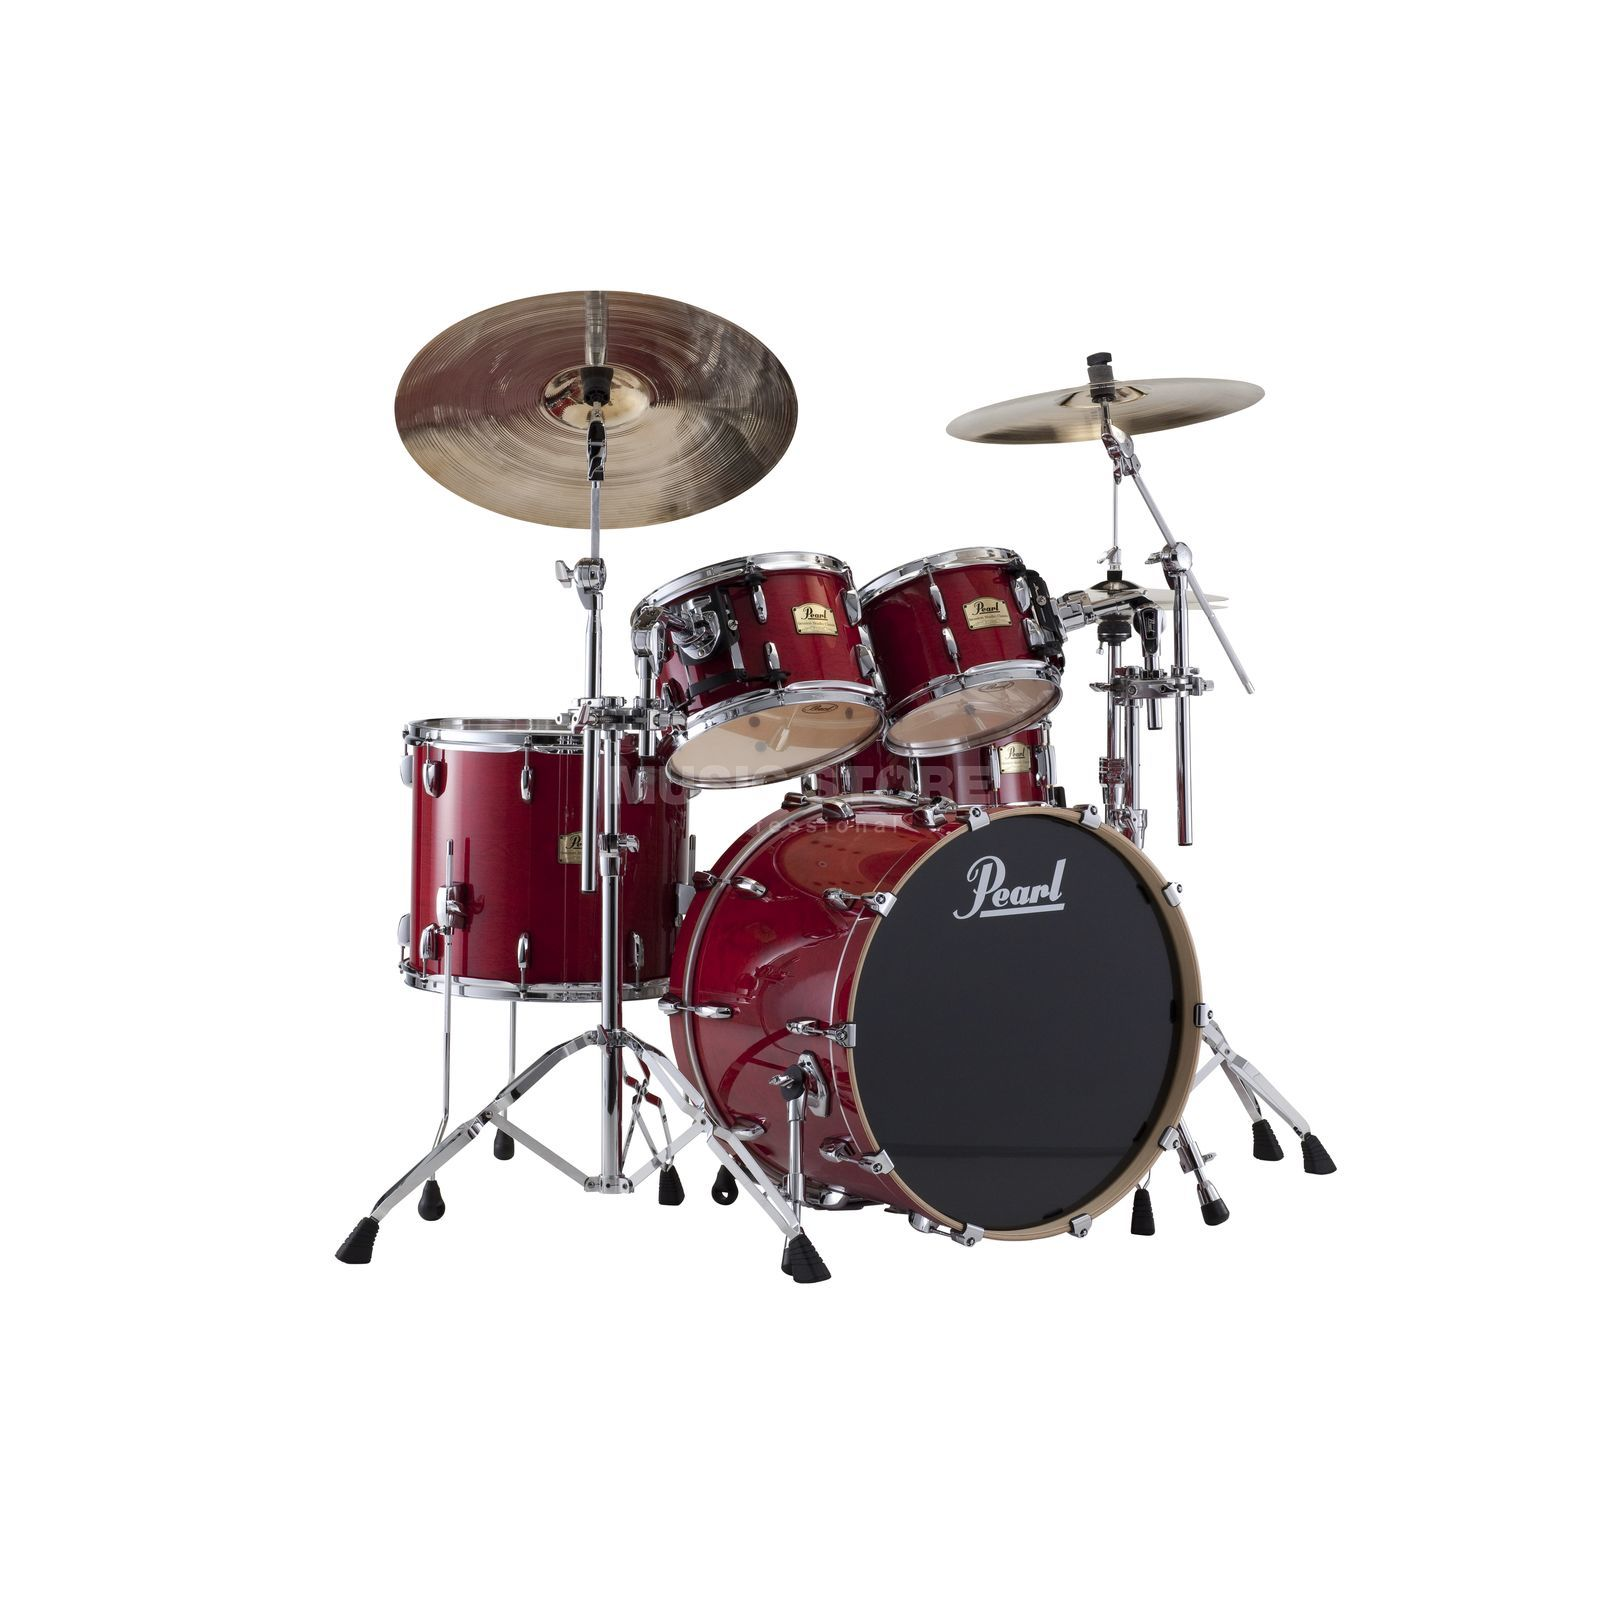 Pearl Session Studio Classic SSC904XUP/C, Sequoia Red Zdjęcie produktu